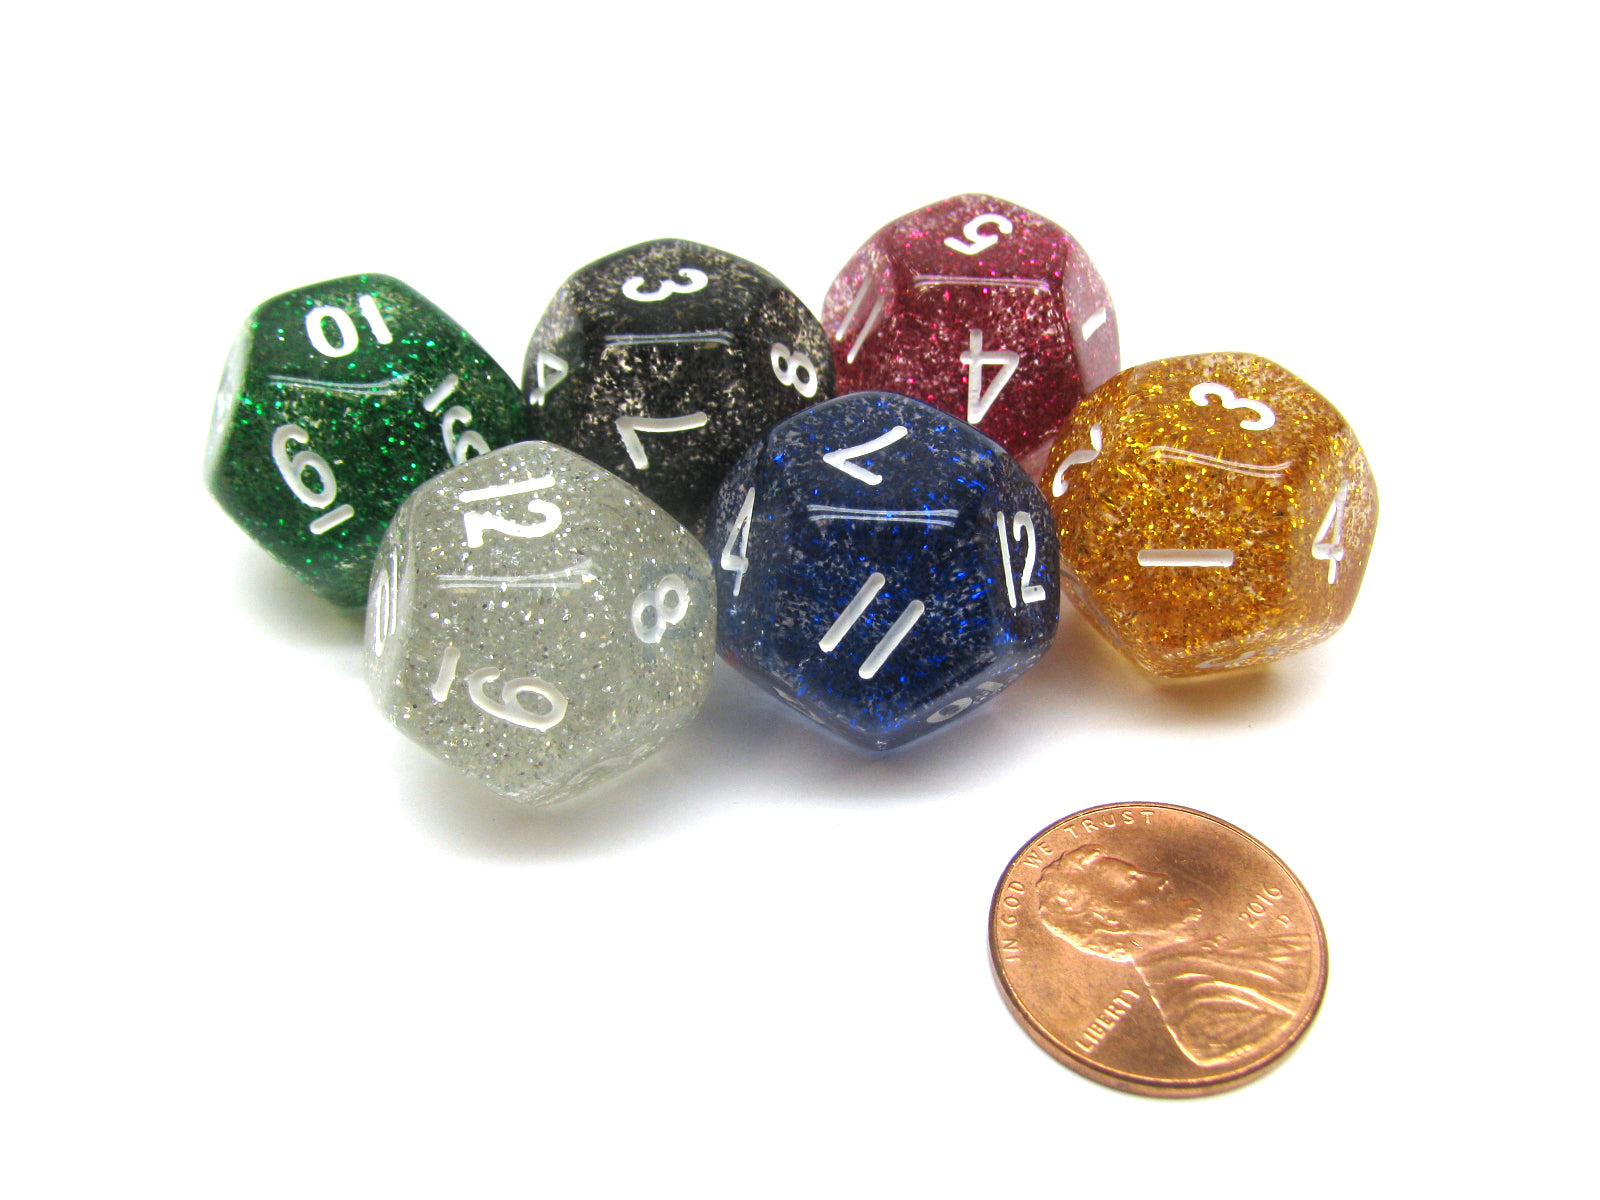 6 SIDED /& 15mm SIDES !! PACK OF 12 PEARL BLUE DICE